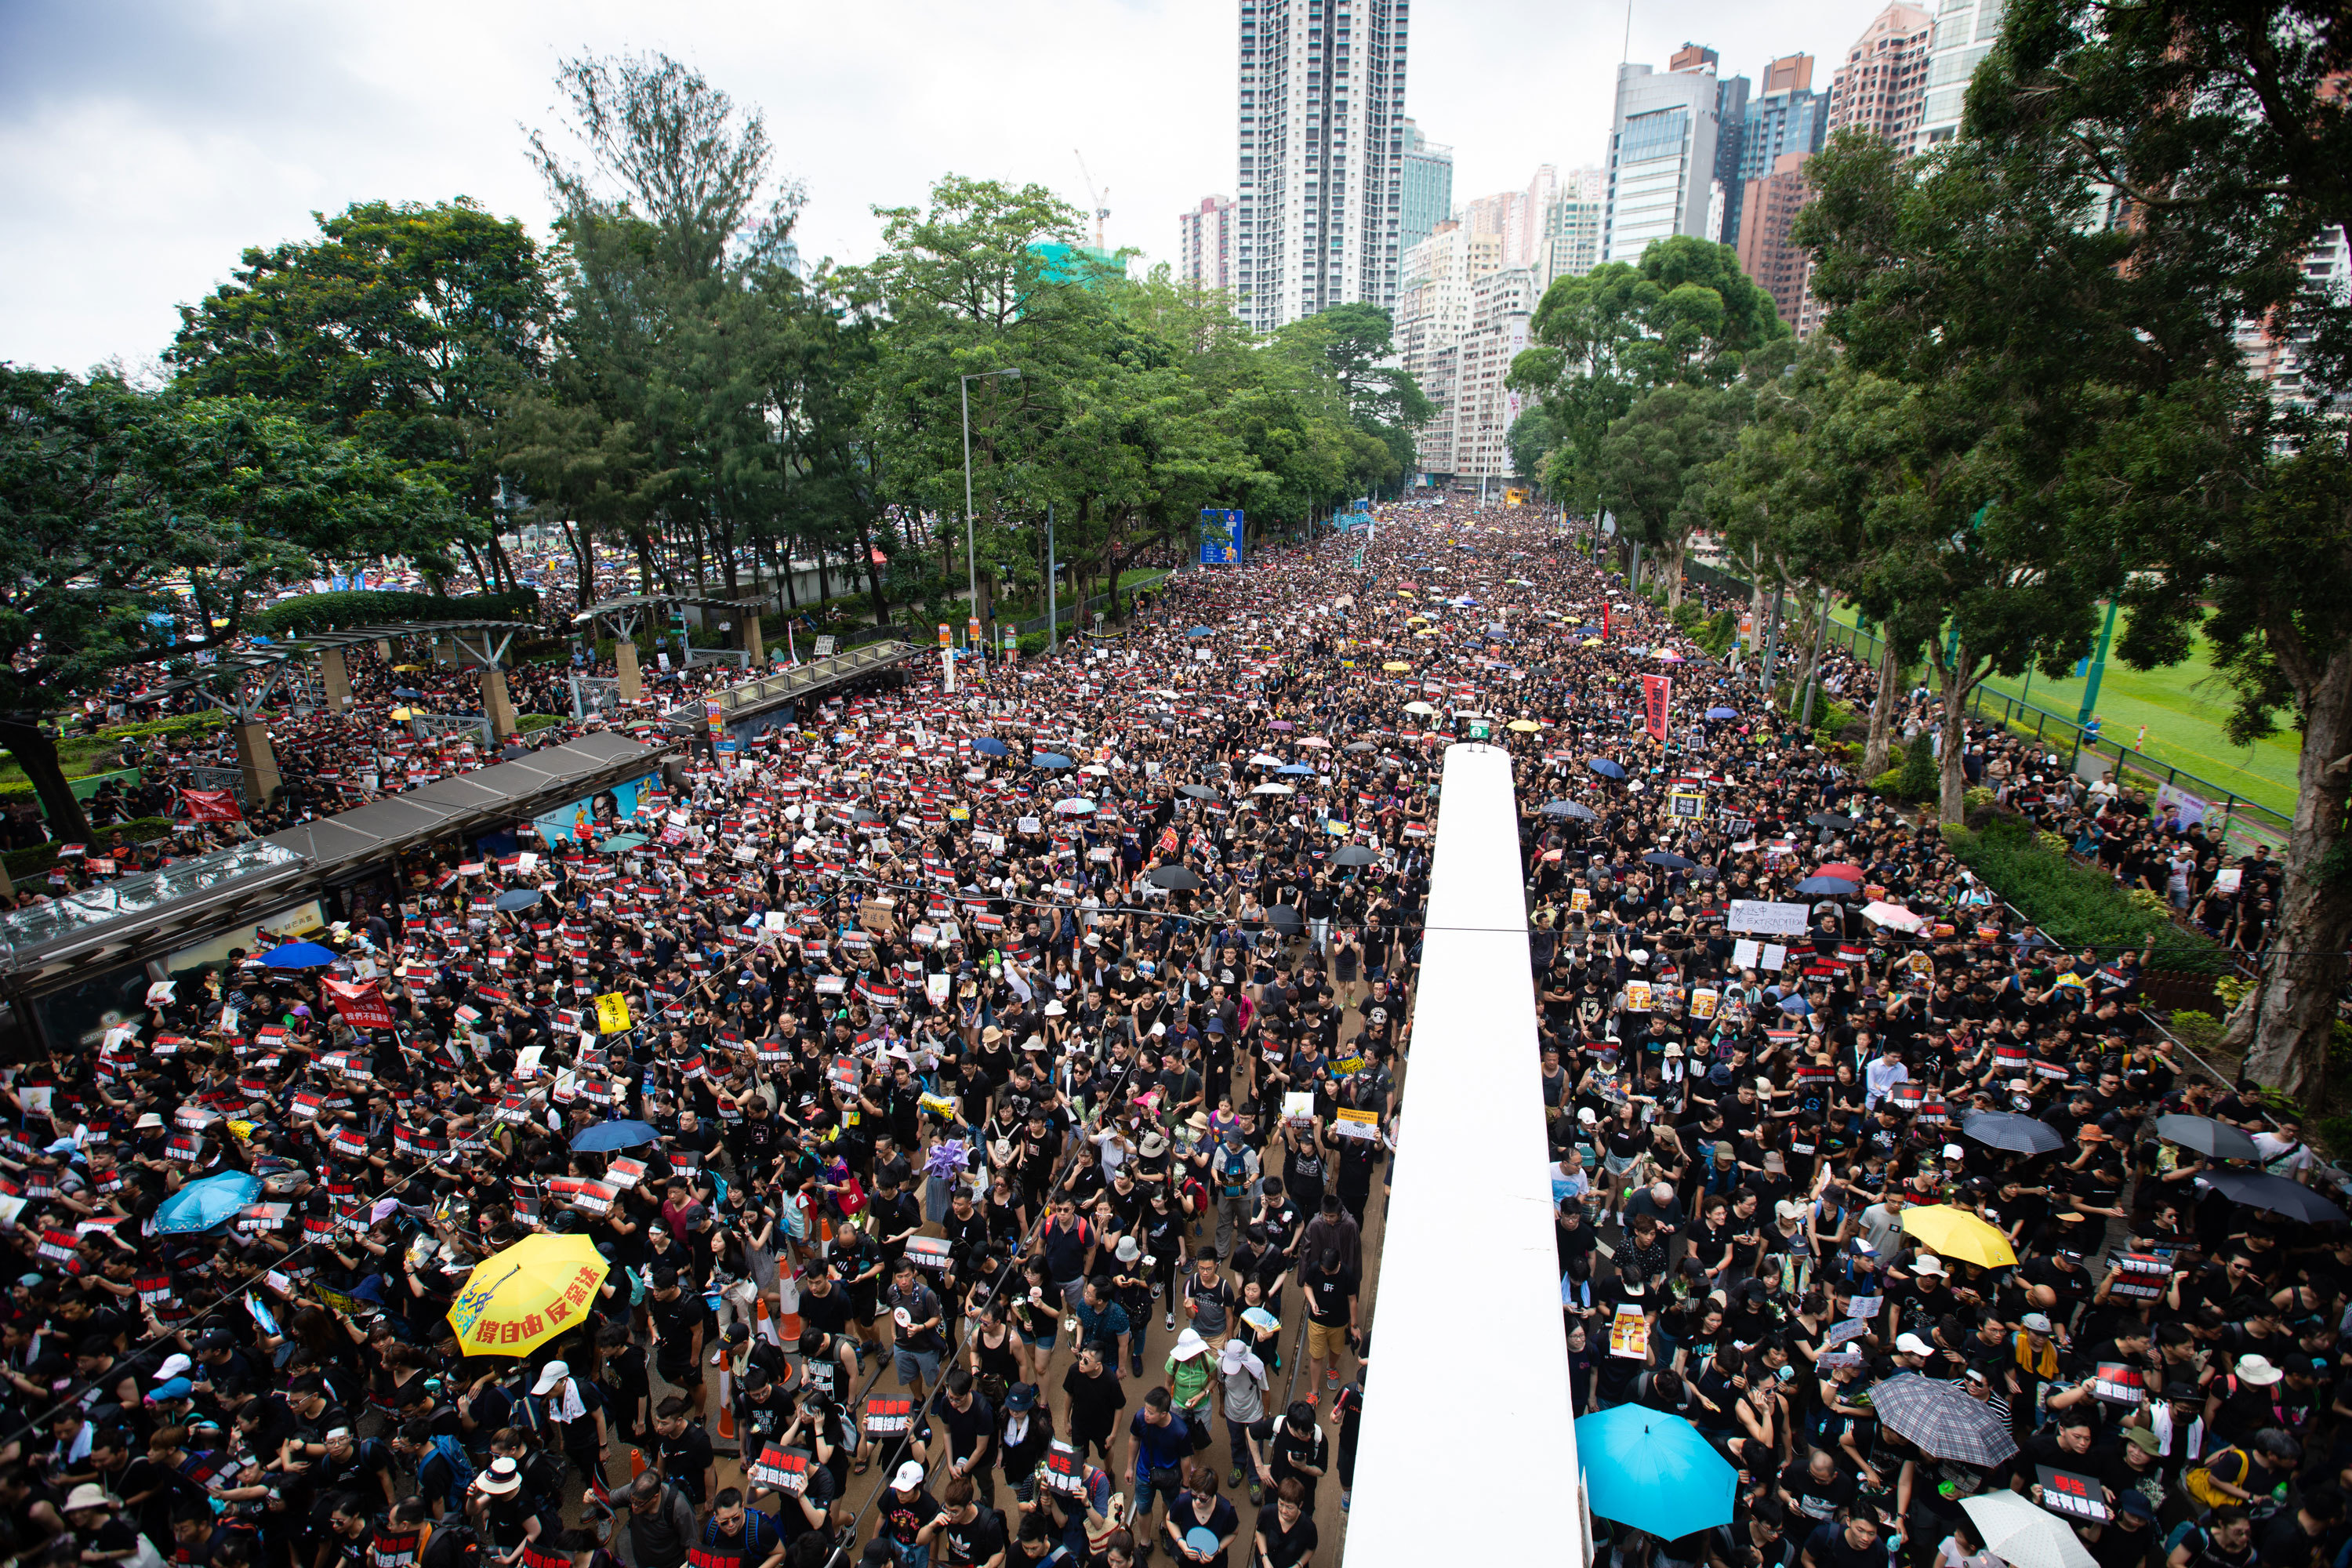 Demonstrations against the extradition bill have brought millions of Hong Kongers onto the street in recent weeks. (Saša Petricic/CBC)